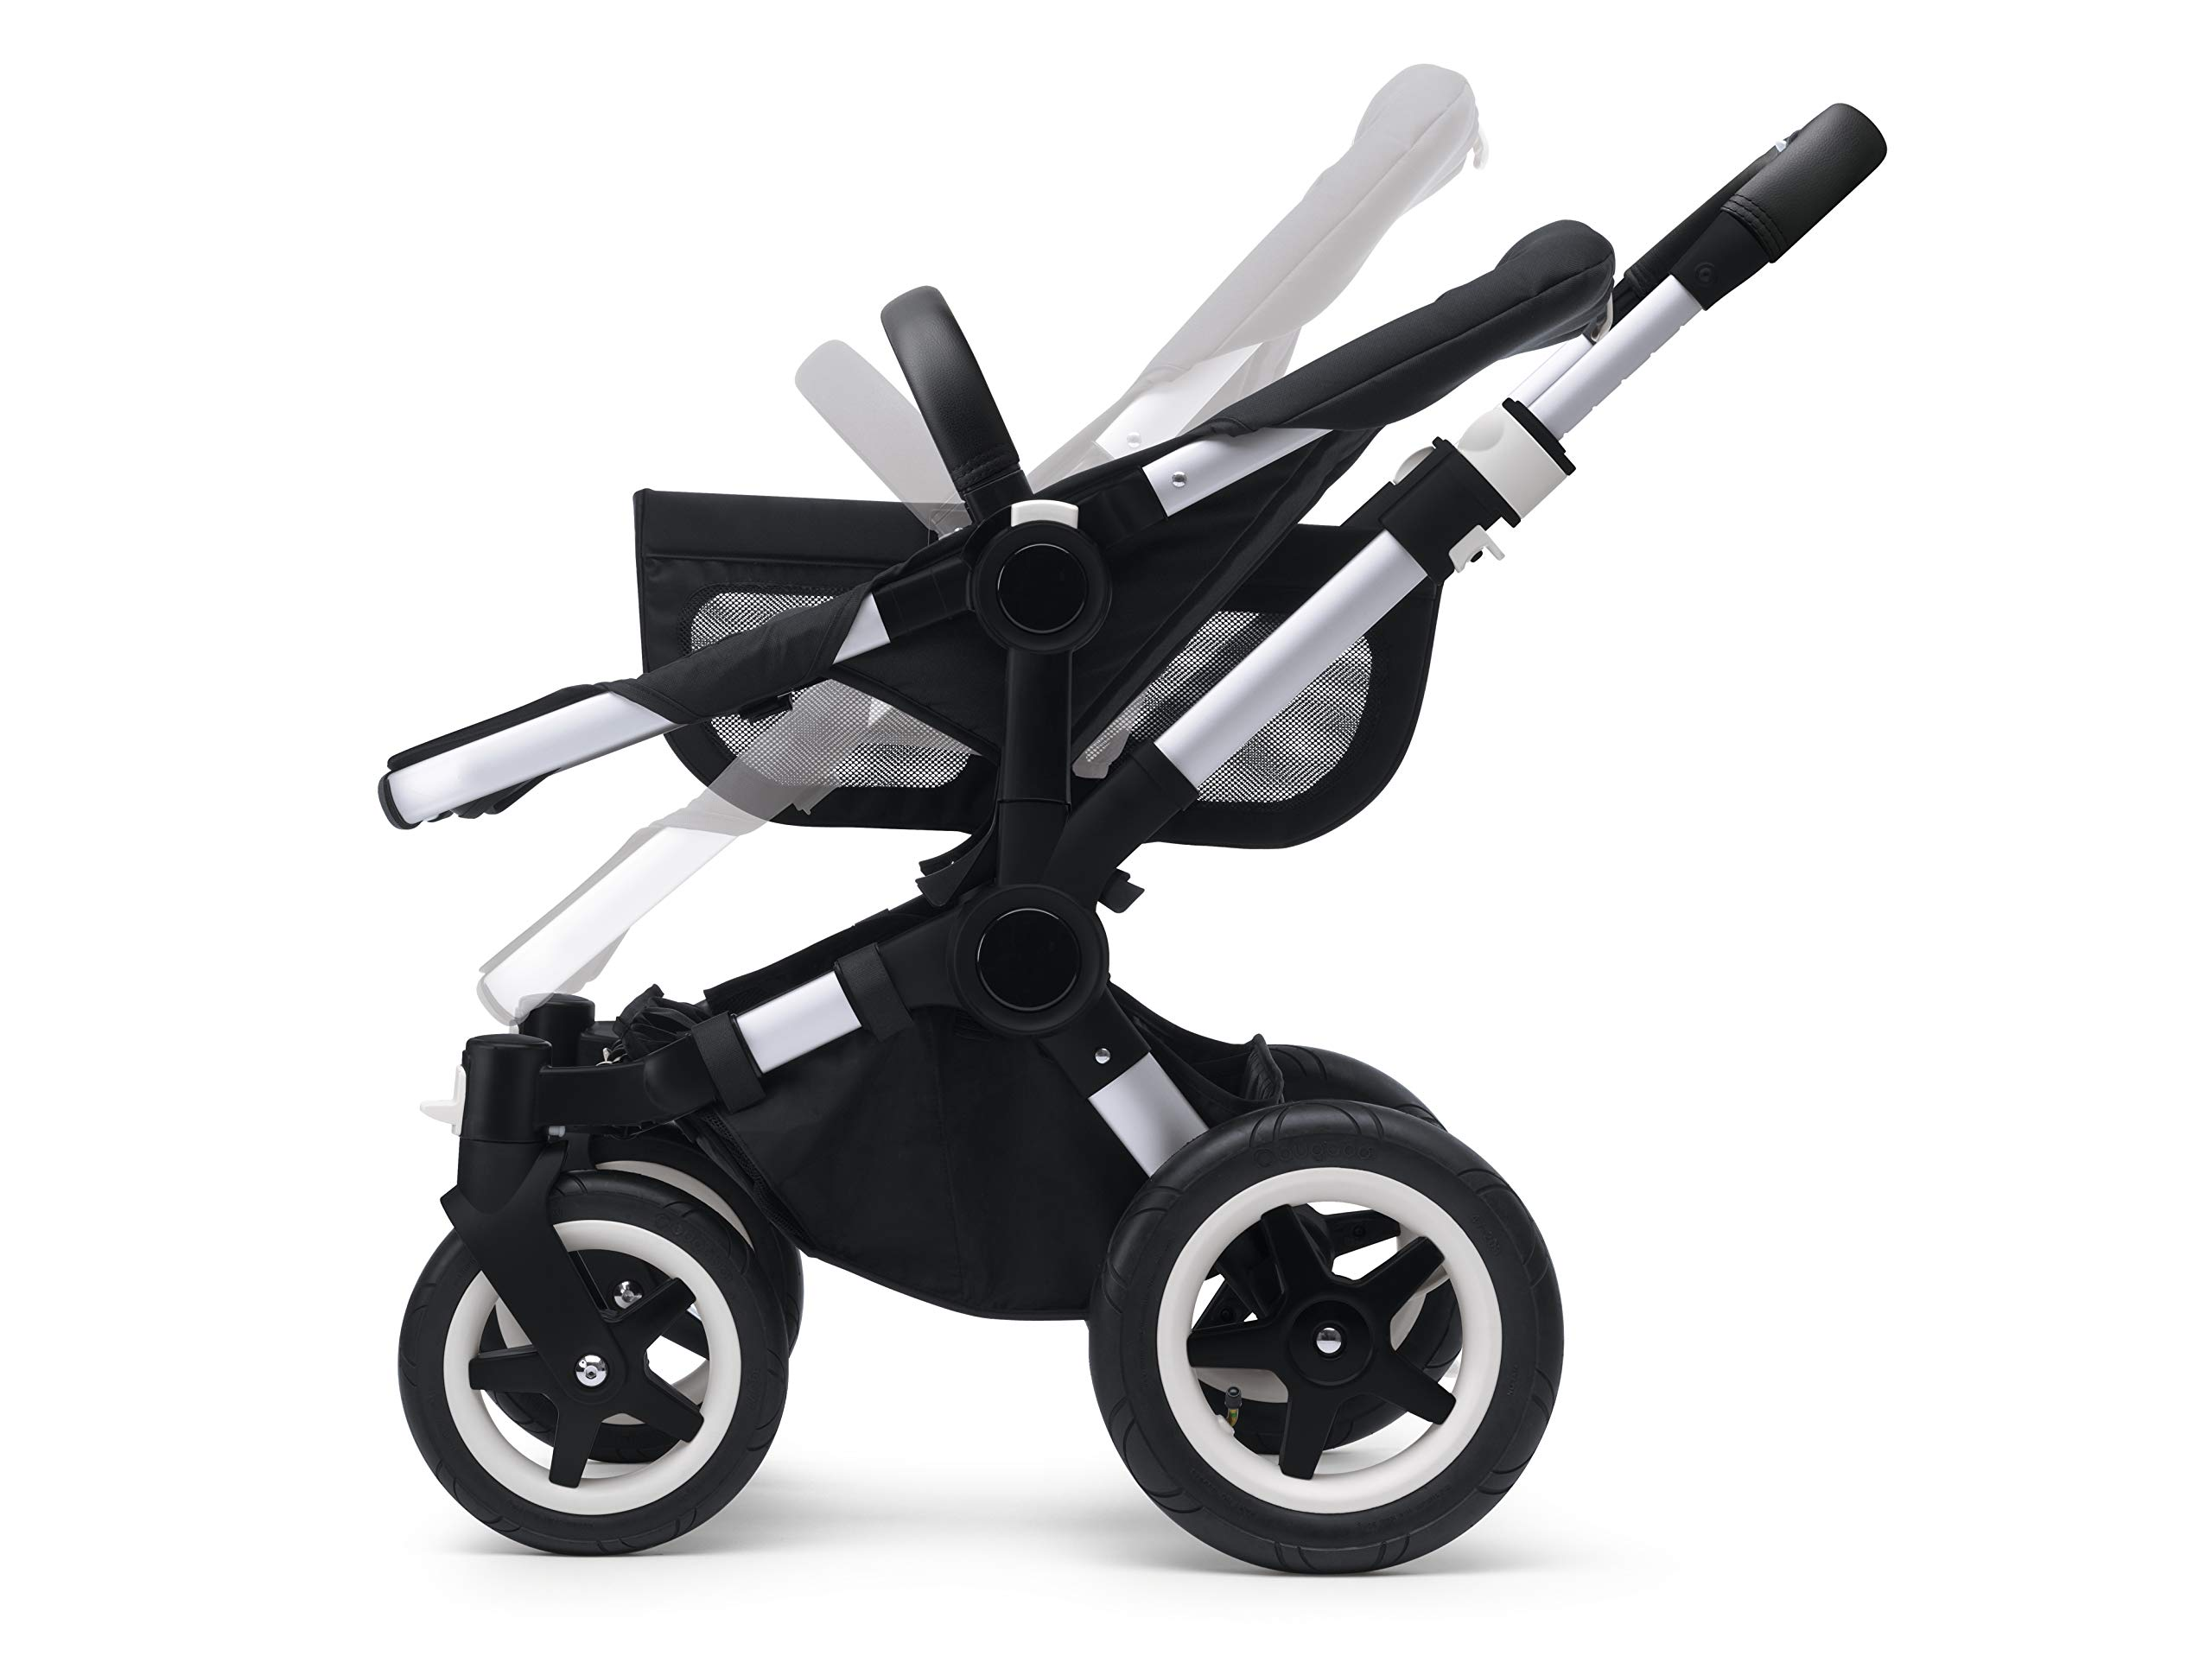 Bugaboo Donkey 2 Duo, 2 in 1 Pram and Double Pushchair for Baby and Toddler, Black/Soft Pink Bugaboo Perfect for two children of different ages Use as a double pushchair or convert it back into a single (mono) in a few simple clicks You only need one hand to push, steer and turn 6